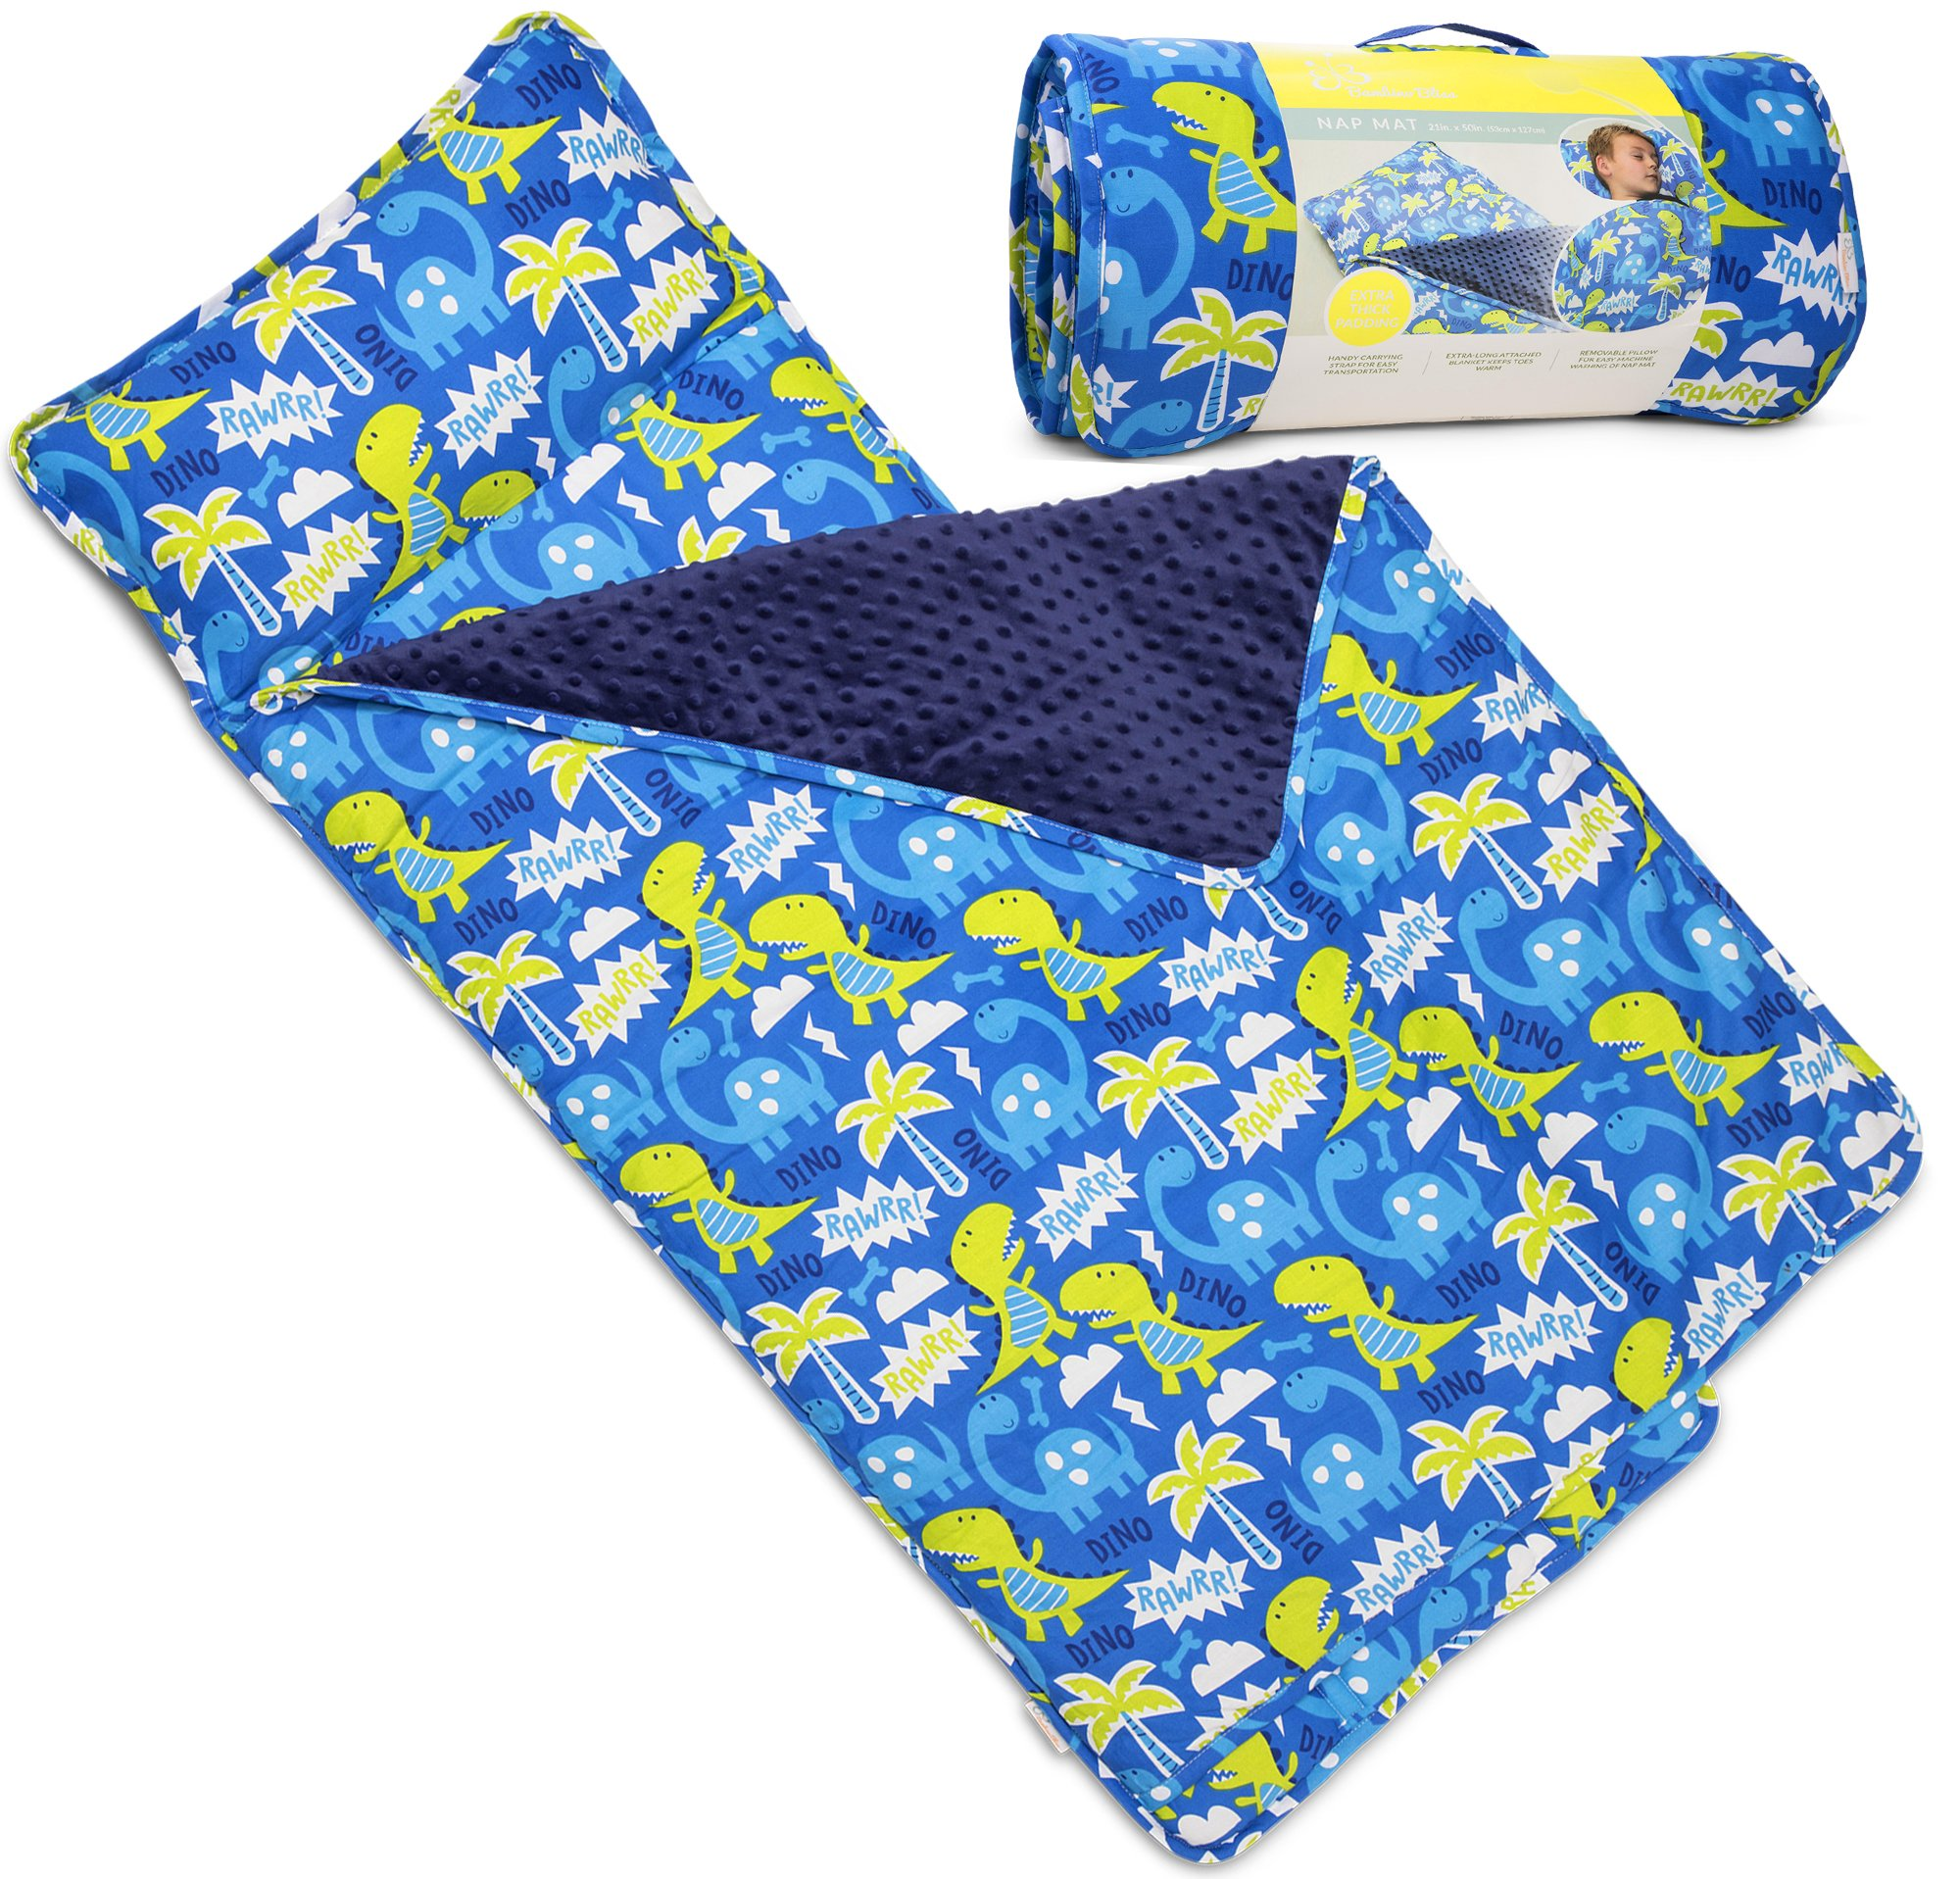 sunny canada nap folding walmart mat health fitness ip en mats daycare gym